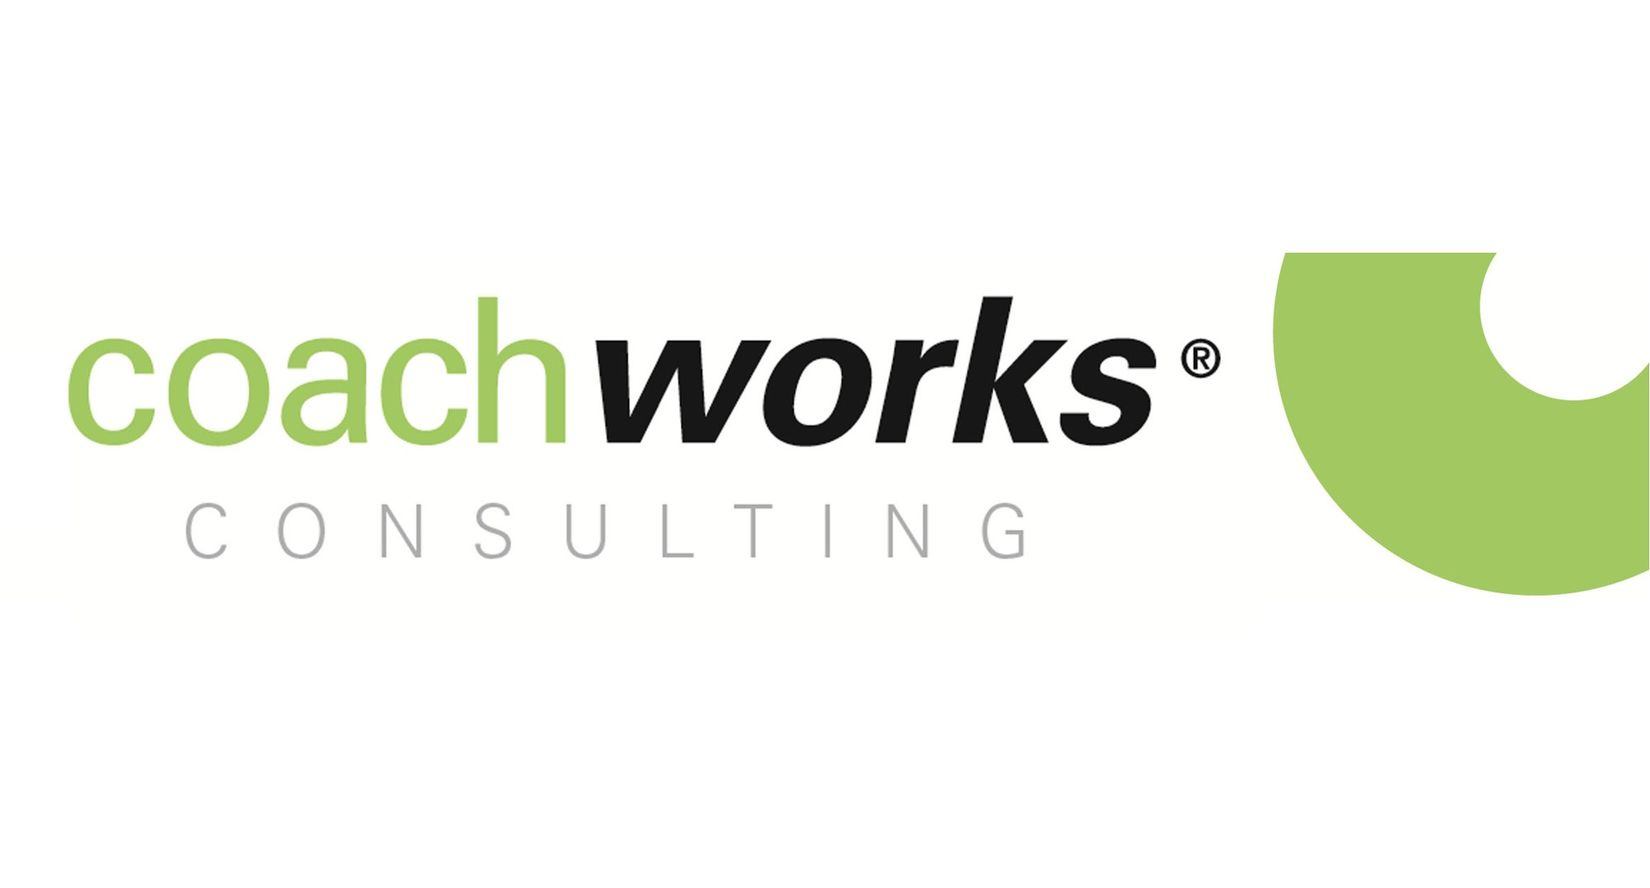 Coachworks Consulting Blog coming soon!